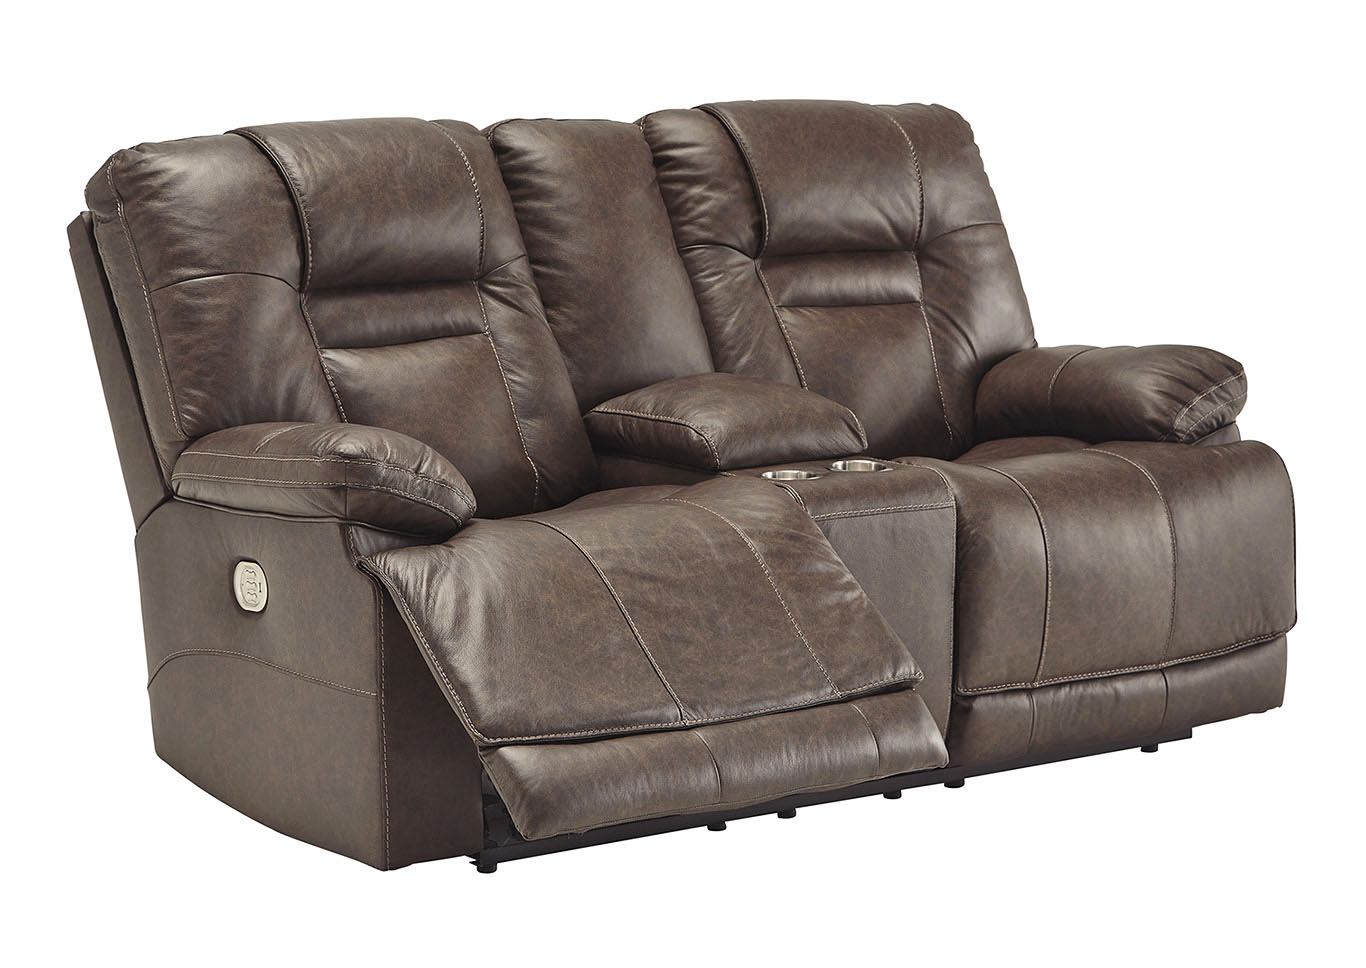 Astounding Ivan Smith Wurstrow Umber Power Reclining Loveseat W Ibusinesslaw Wood Chair Design Ideas Ibusinesslaworg